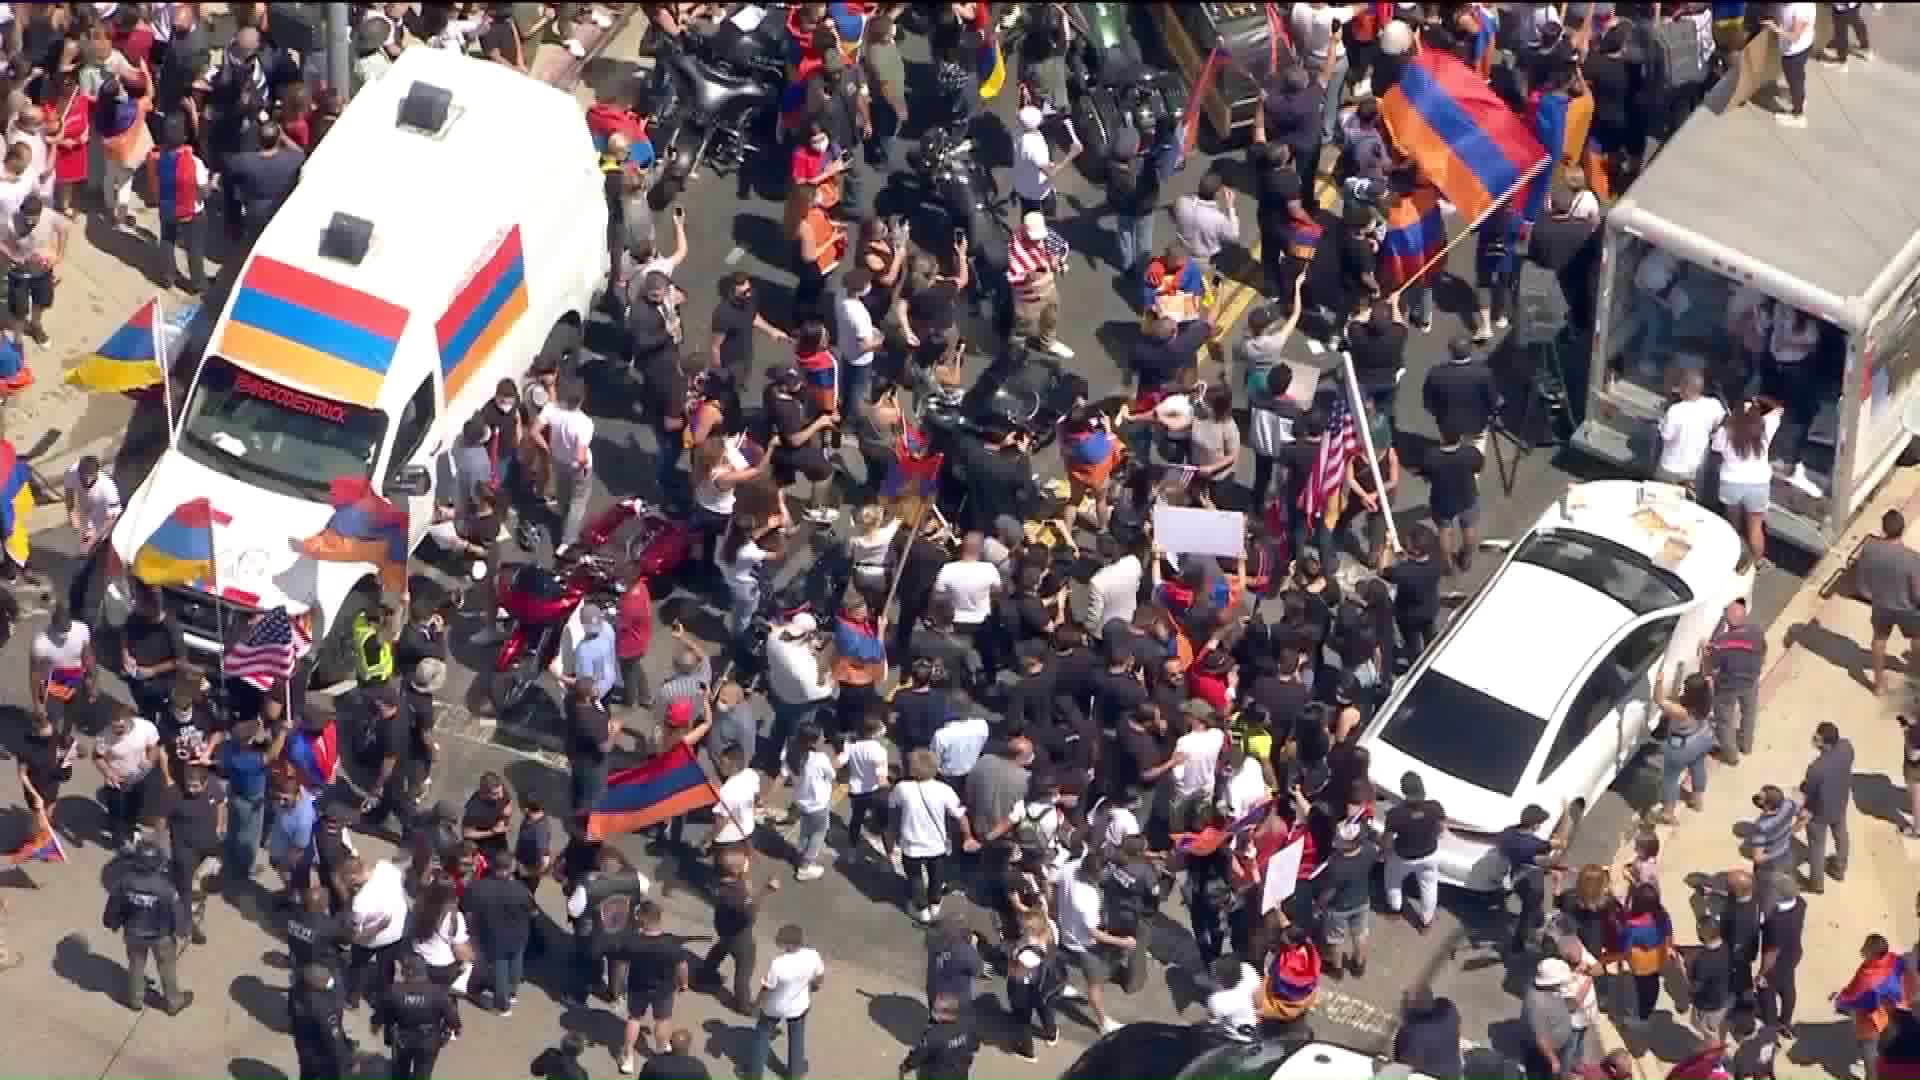 Demonstrators gather outside the Azerbaijani consulate in Los Angeles on July 21, 2020. (KTLA)